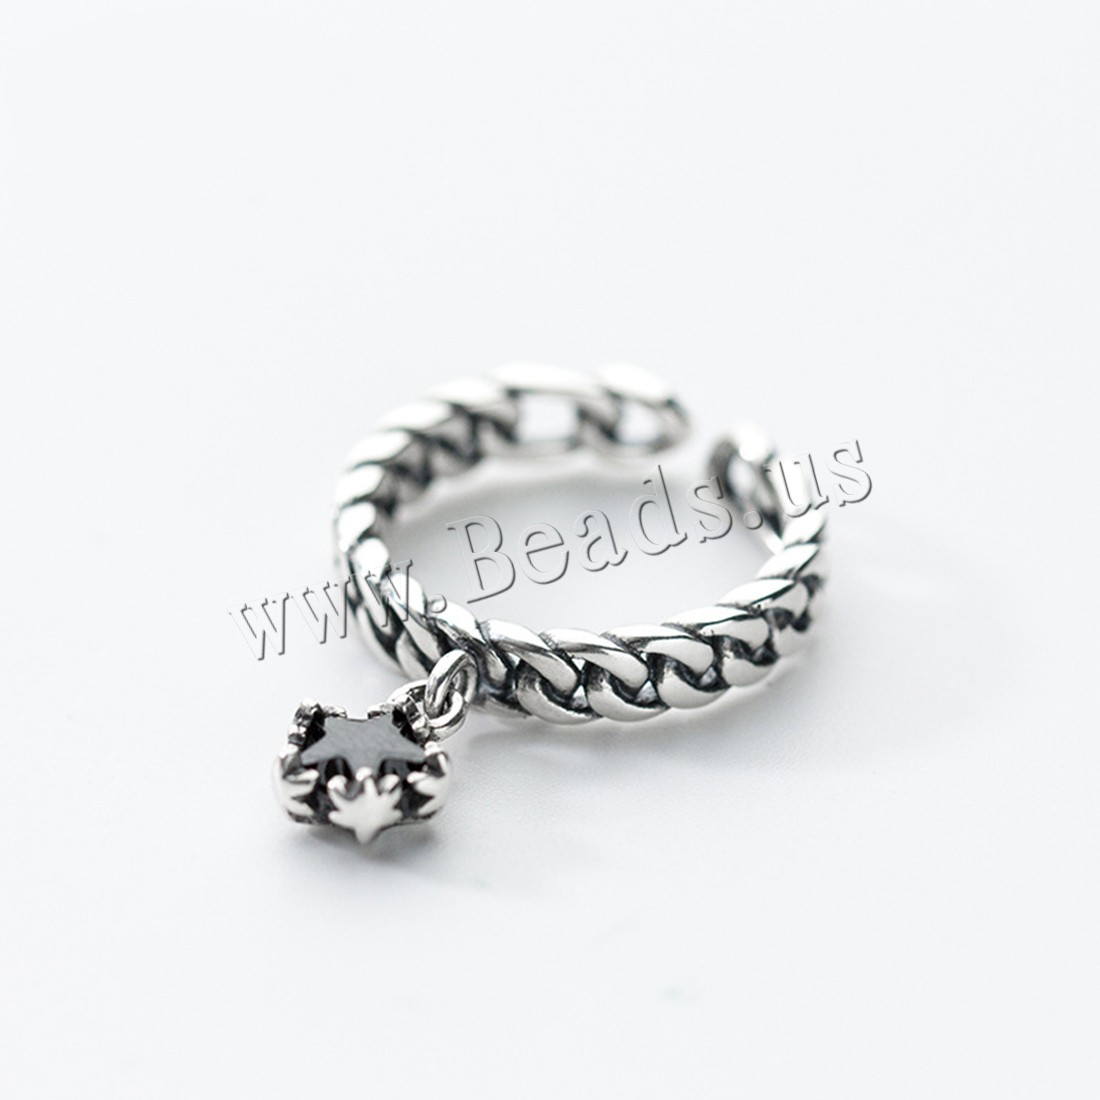 Buy Thailand Sterling Silver Cuff Finger Ring Star woman & rhinestone 7mm 2mm US Ring Size:10-11 Sold PC